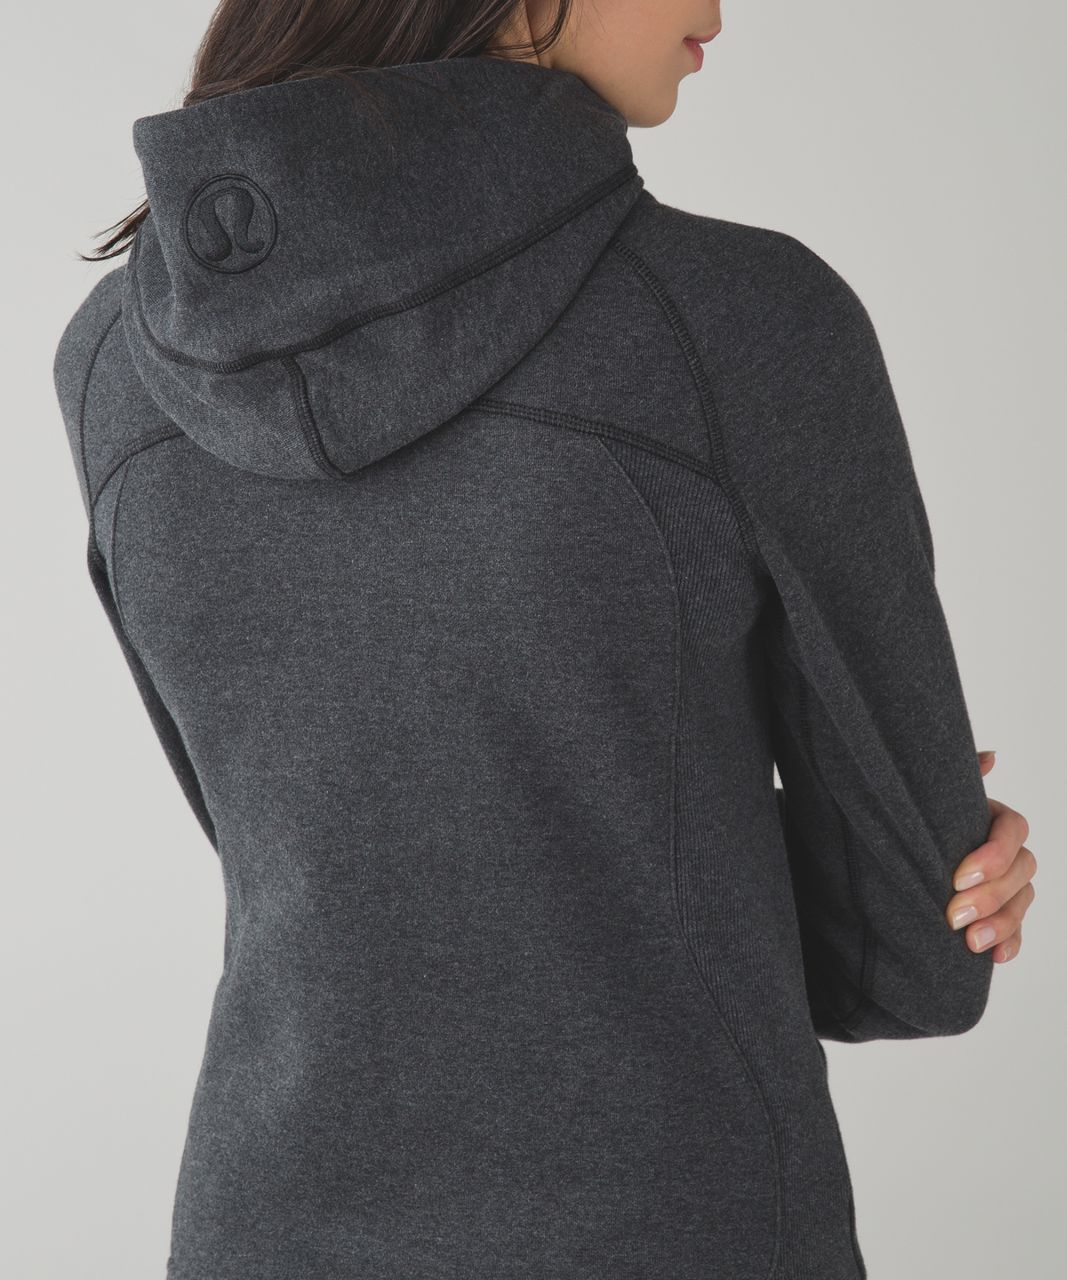 Lululemon Scuba Hoodie *Classic Cotton Fleece - Heathered Black